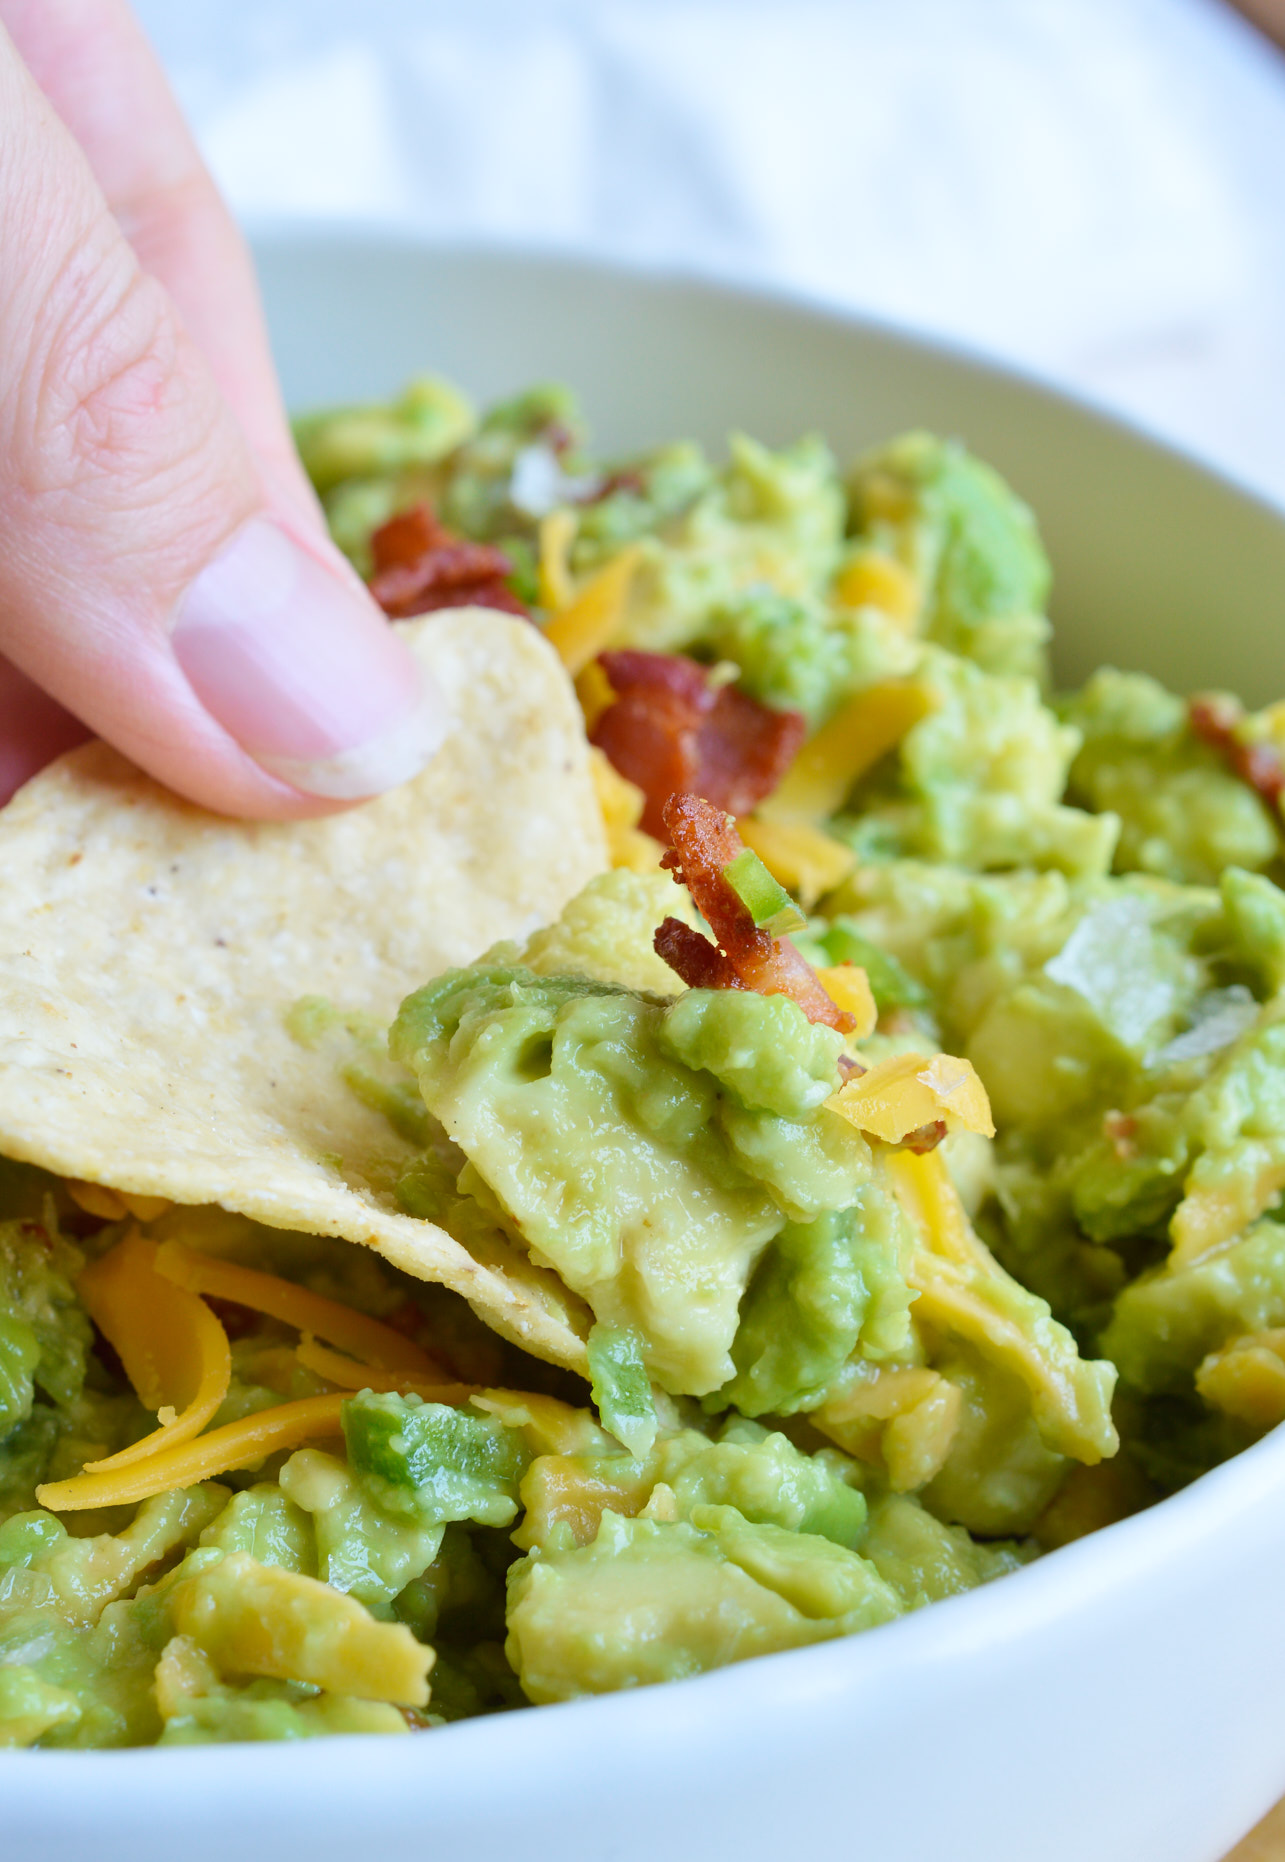 Guacamole just got even better with bacon, cheddar cheese and jalapeños. This Jalapeño Popper Guacamole Recipe is the perfect appetizer for barbecues, parties, game day or just to cure your guac craving! And what doesn't taste better with a little cheese and bacon!?!?